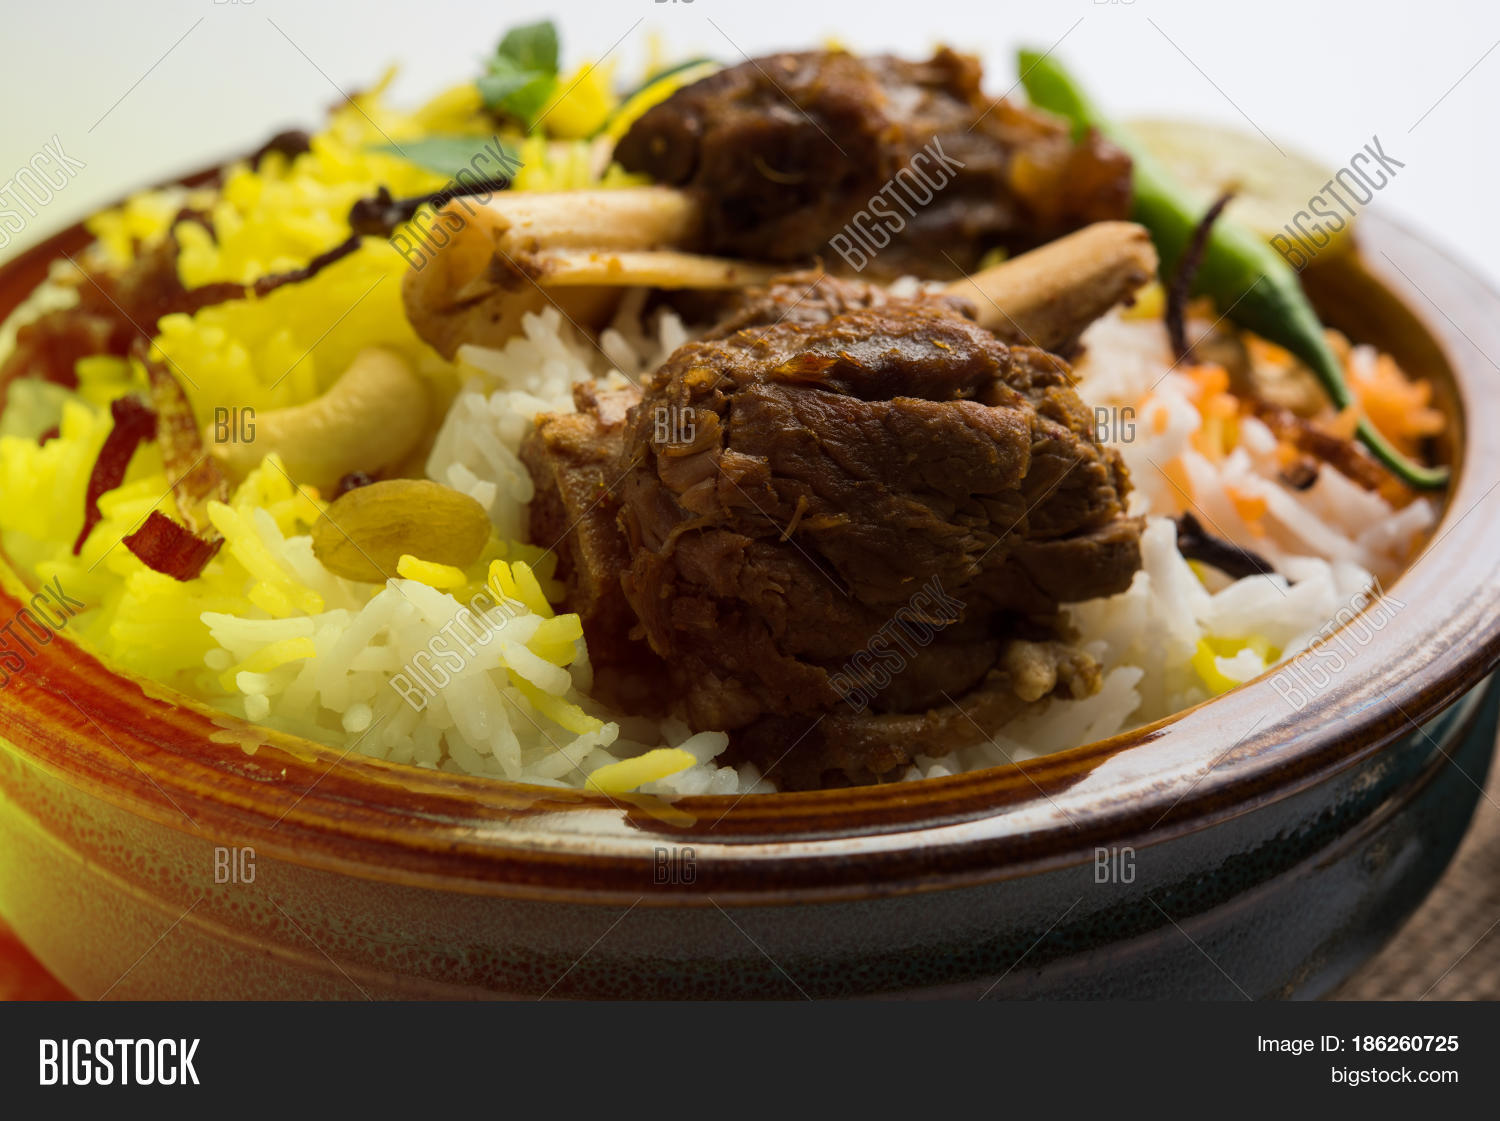 how to prepare kashmiri mutton